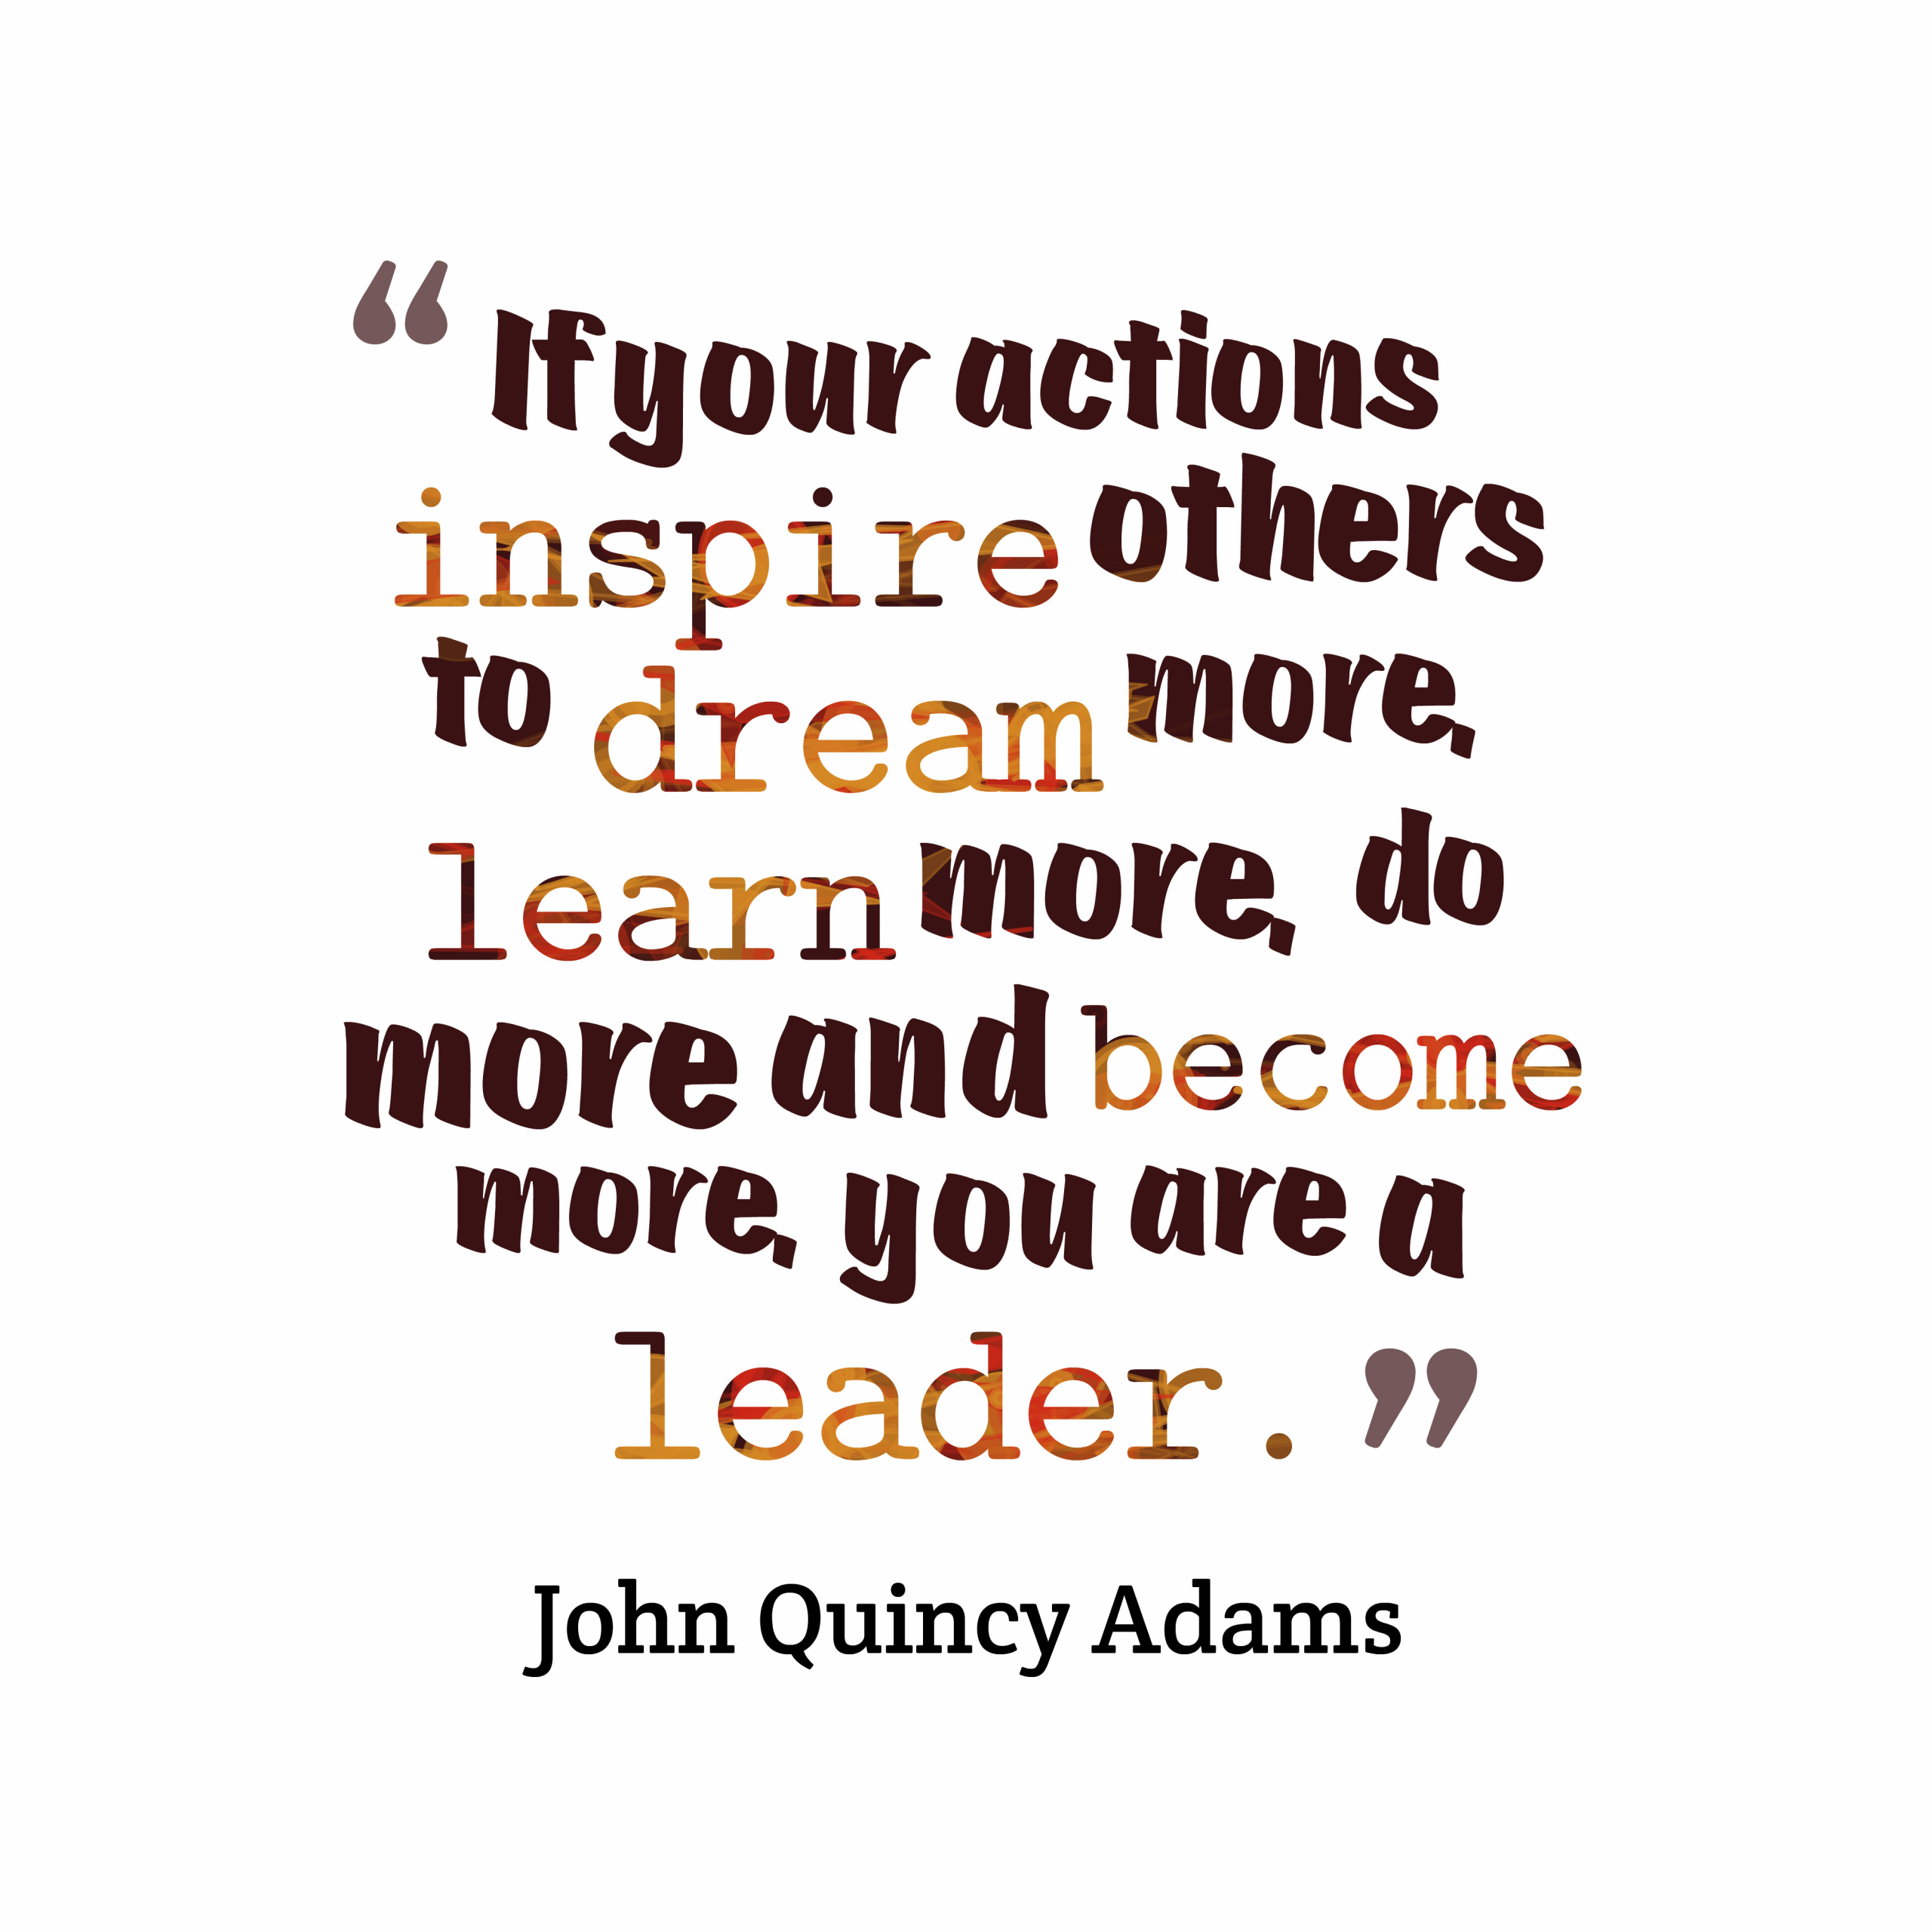 John Adams Quotes On Leadership  The Leader In Me Call for Quotes and Words of Inspiration